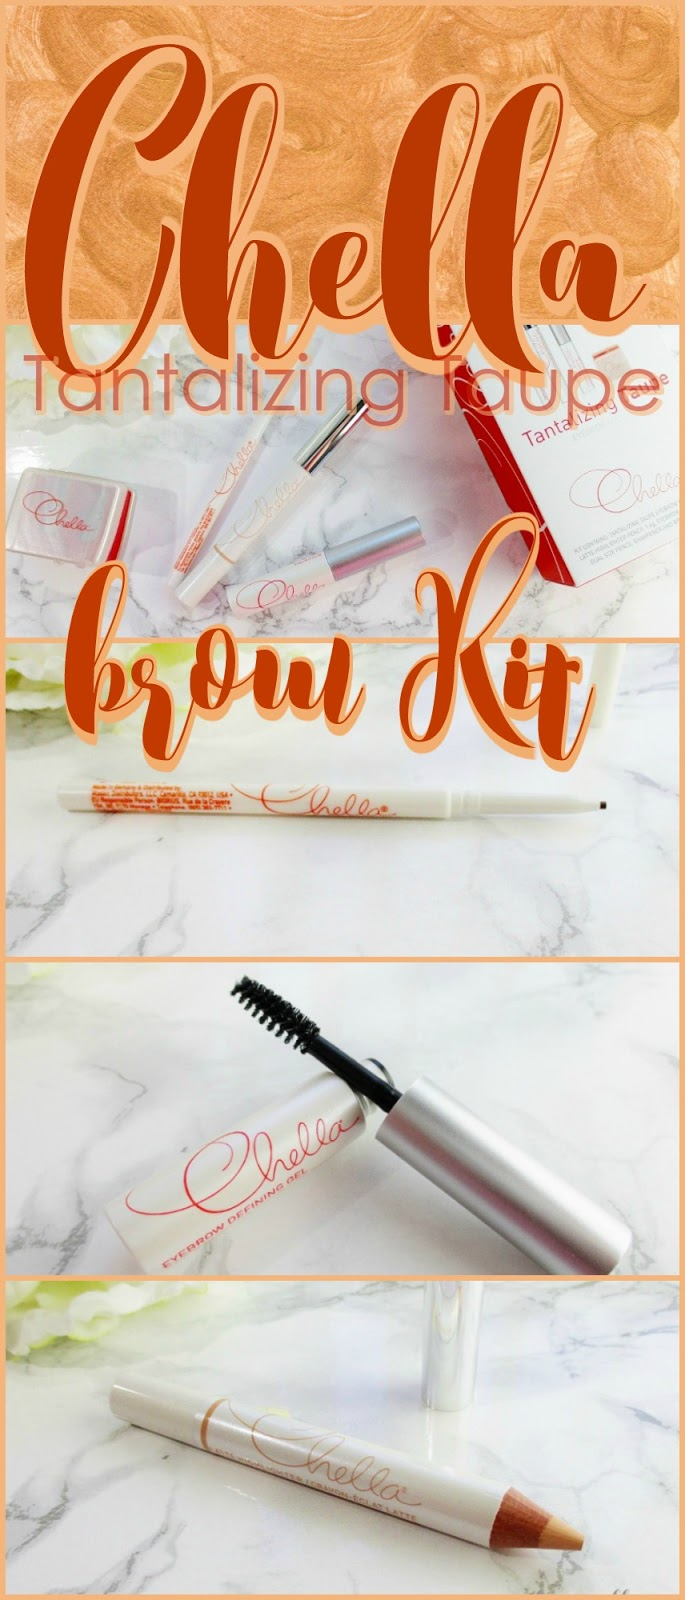 chella-tantalizing-taupe-eye-brow-kit-for-pinterest